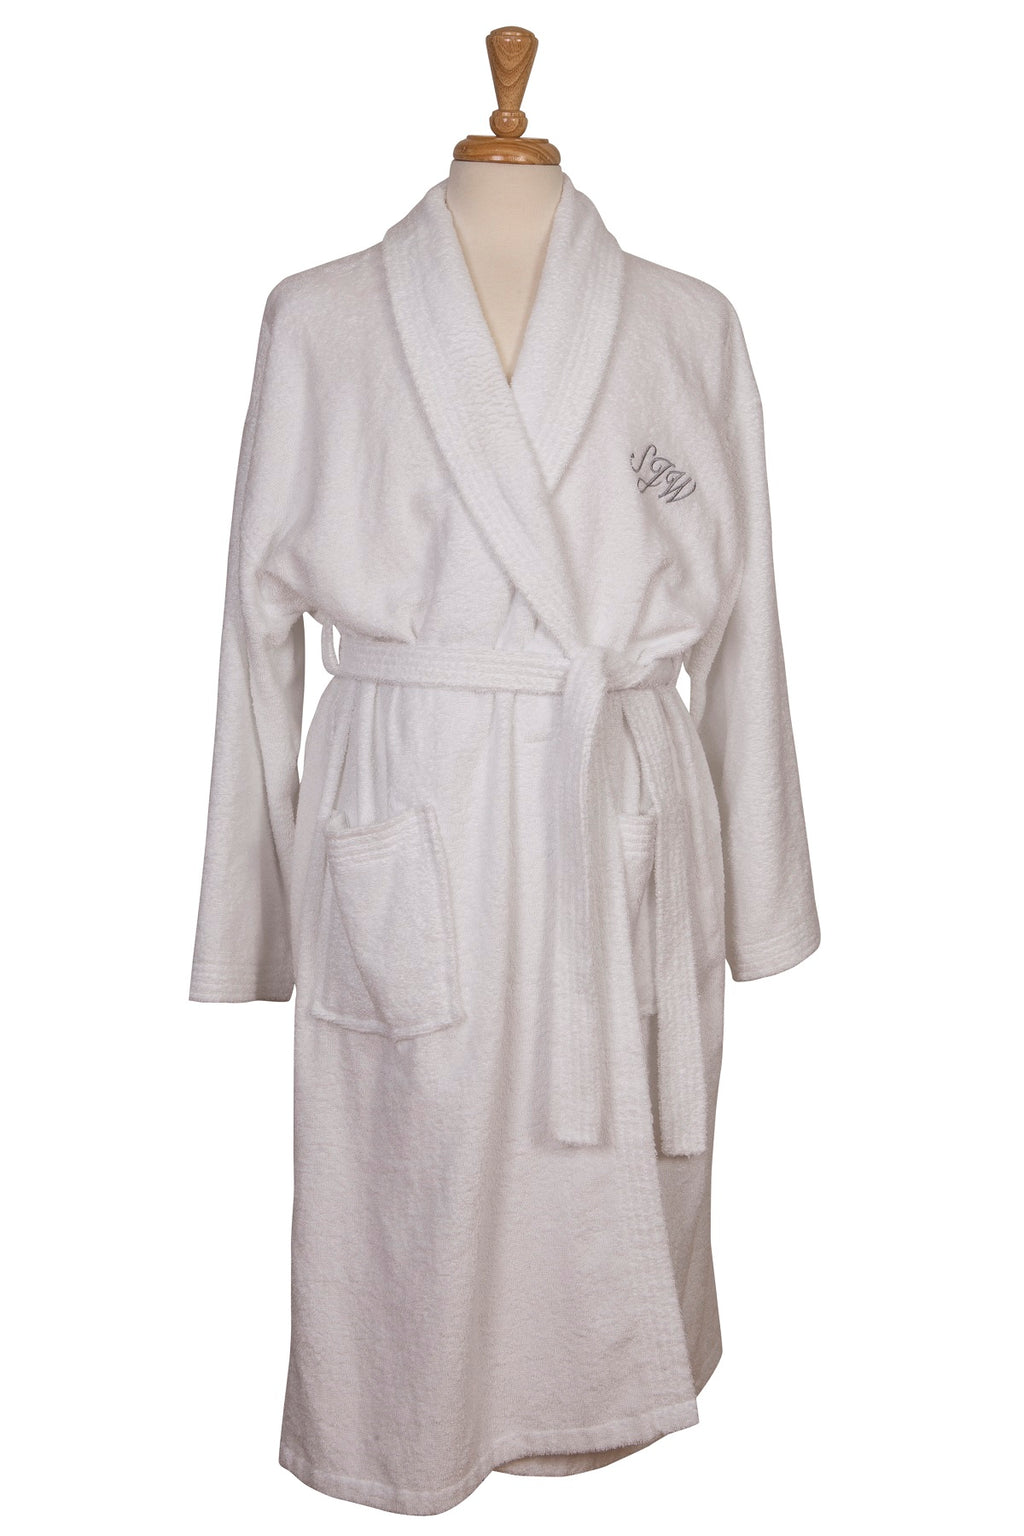 Personalised cotton towelling robe gown one size